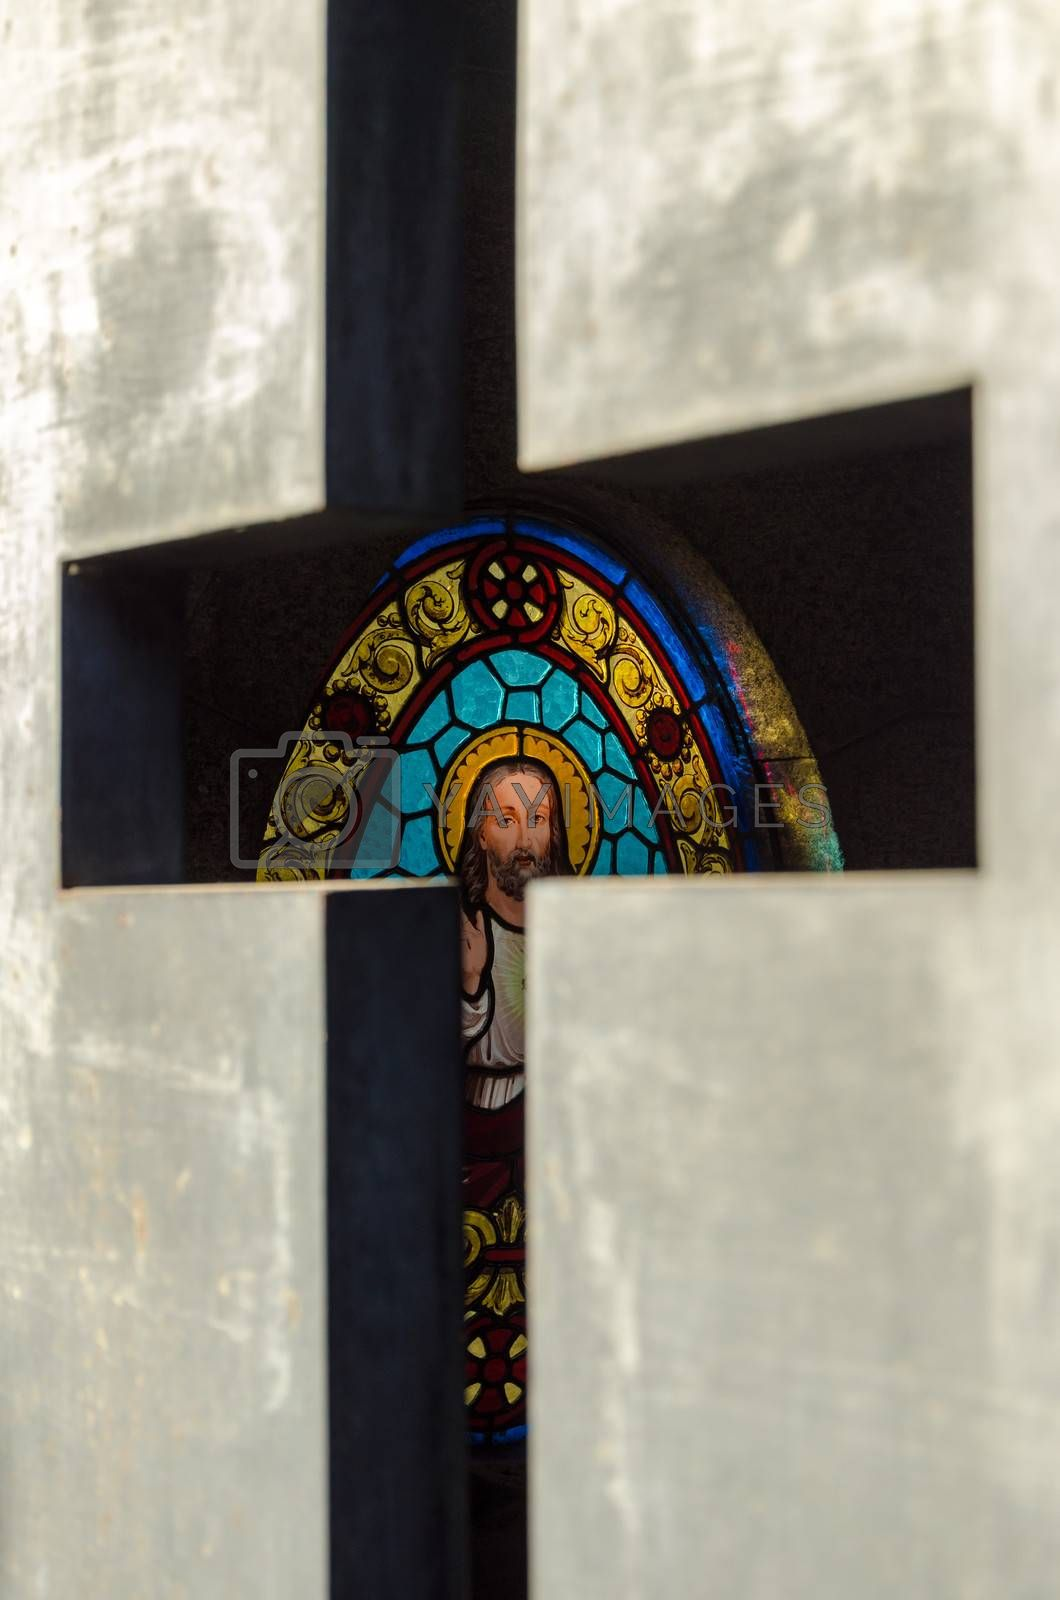 Colorful stained glass decorating a tomb in Recoleta Cemetery in Buenos Aires